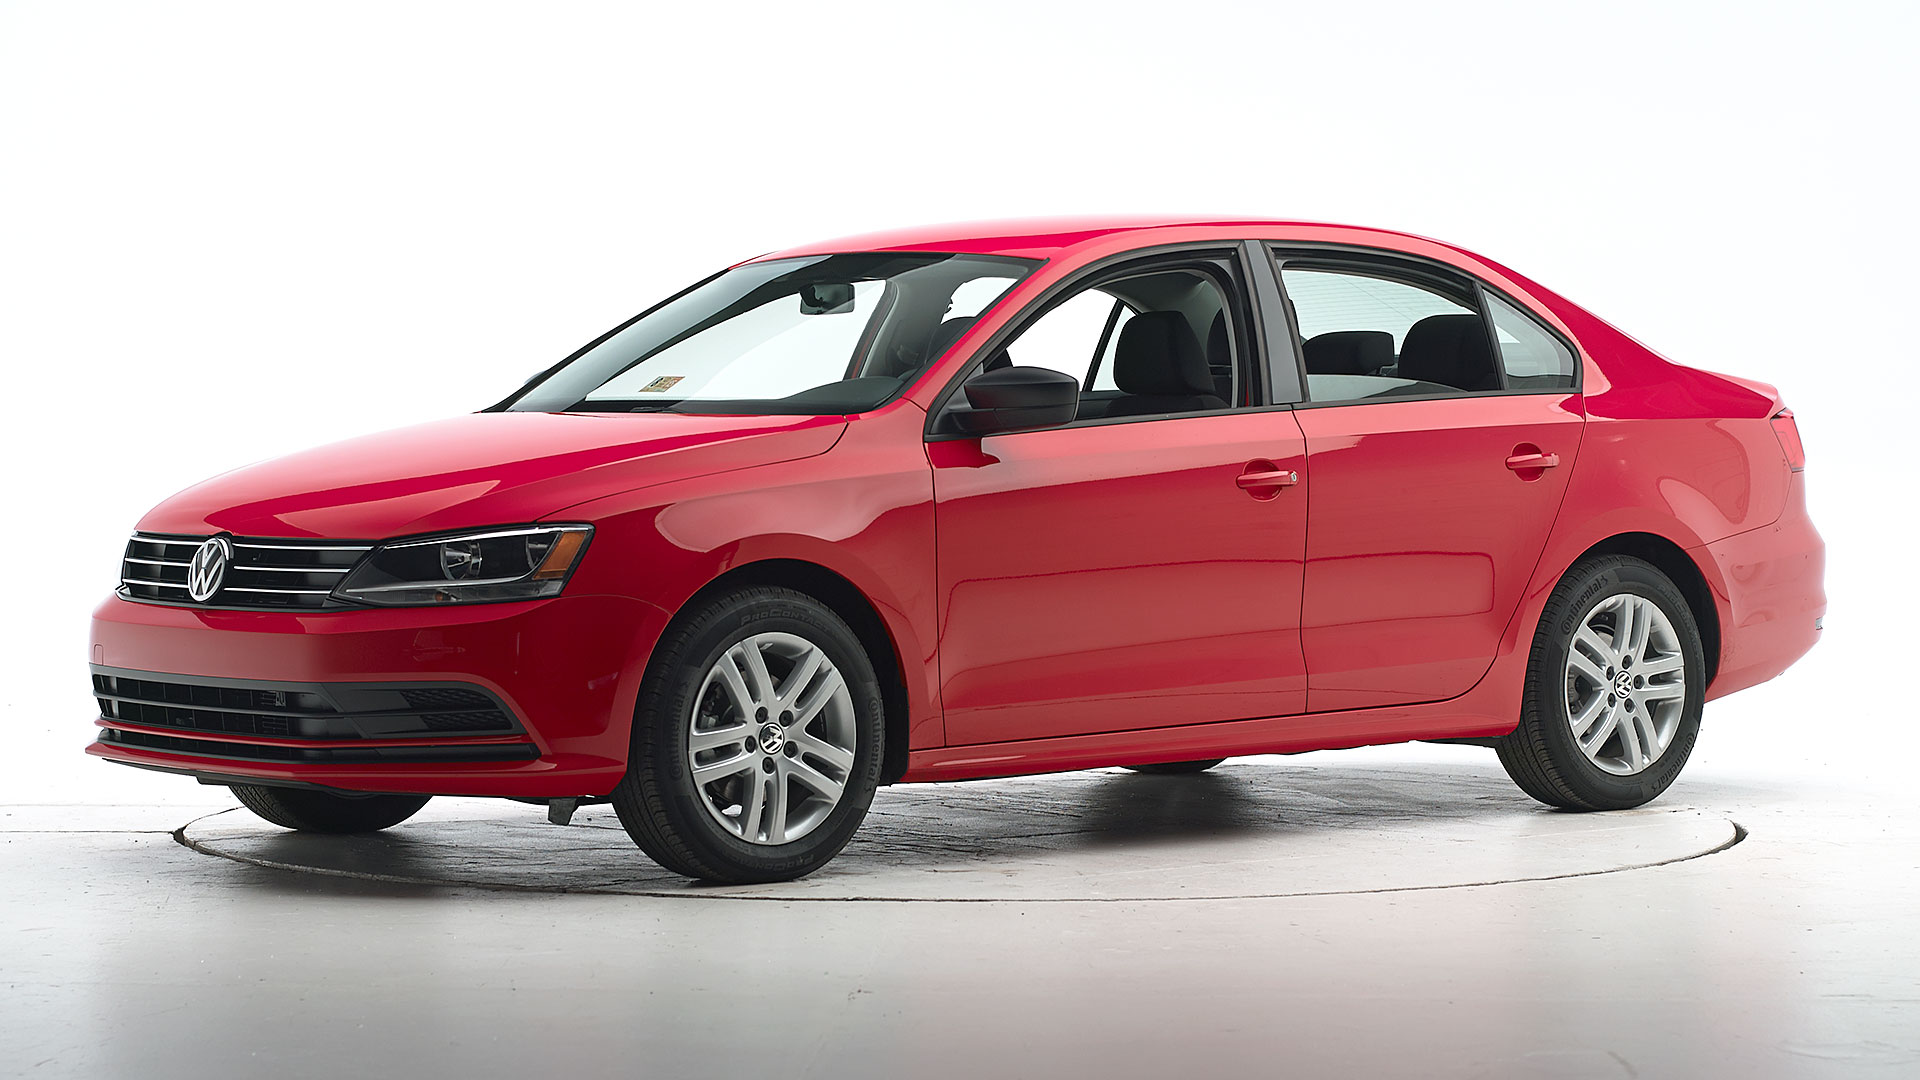 2015 Volkswagen Jetta 4-door sedan